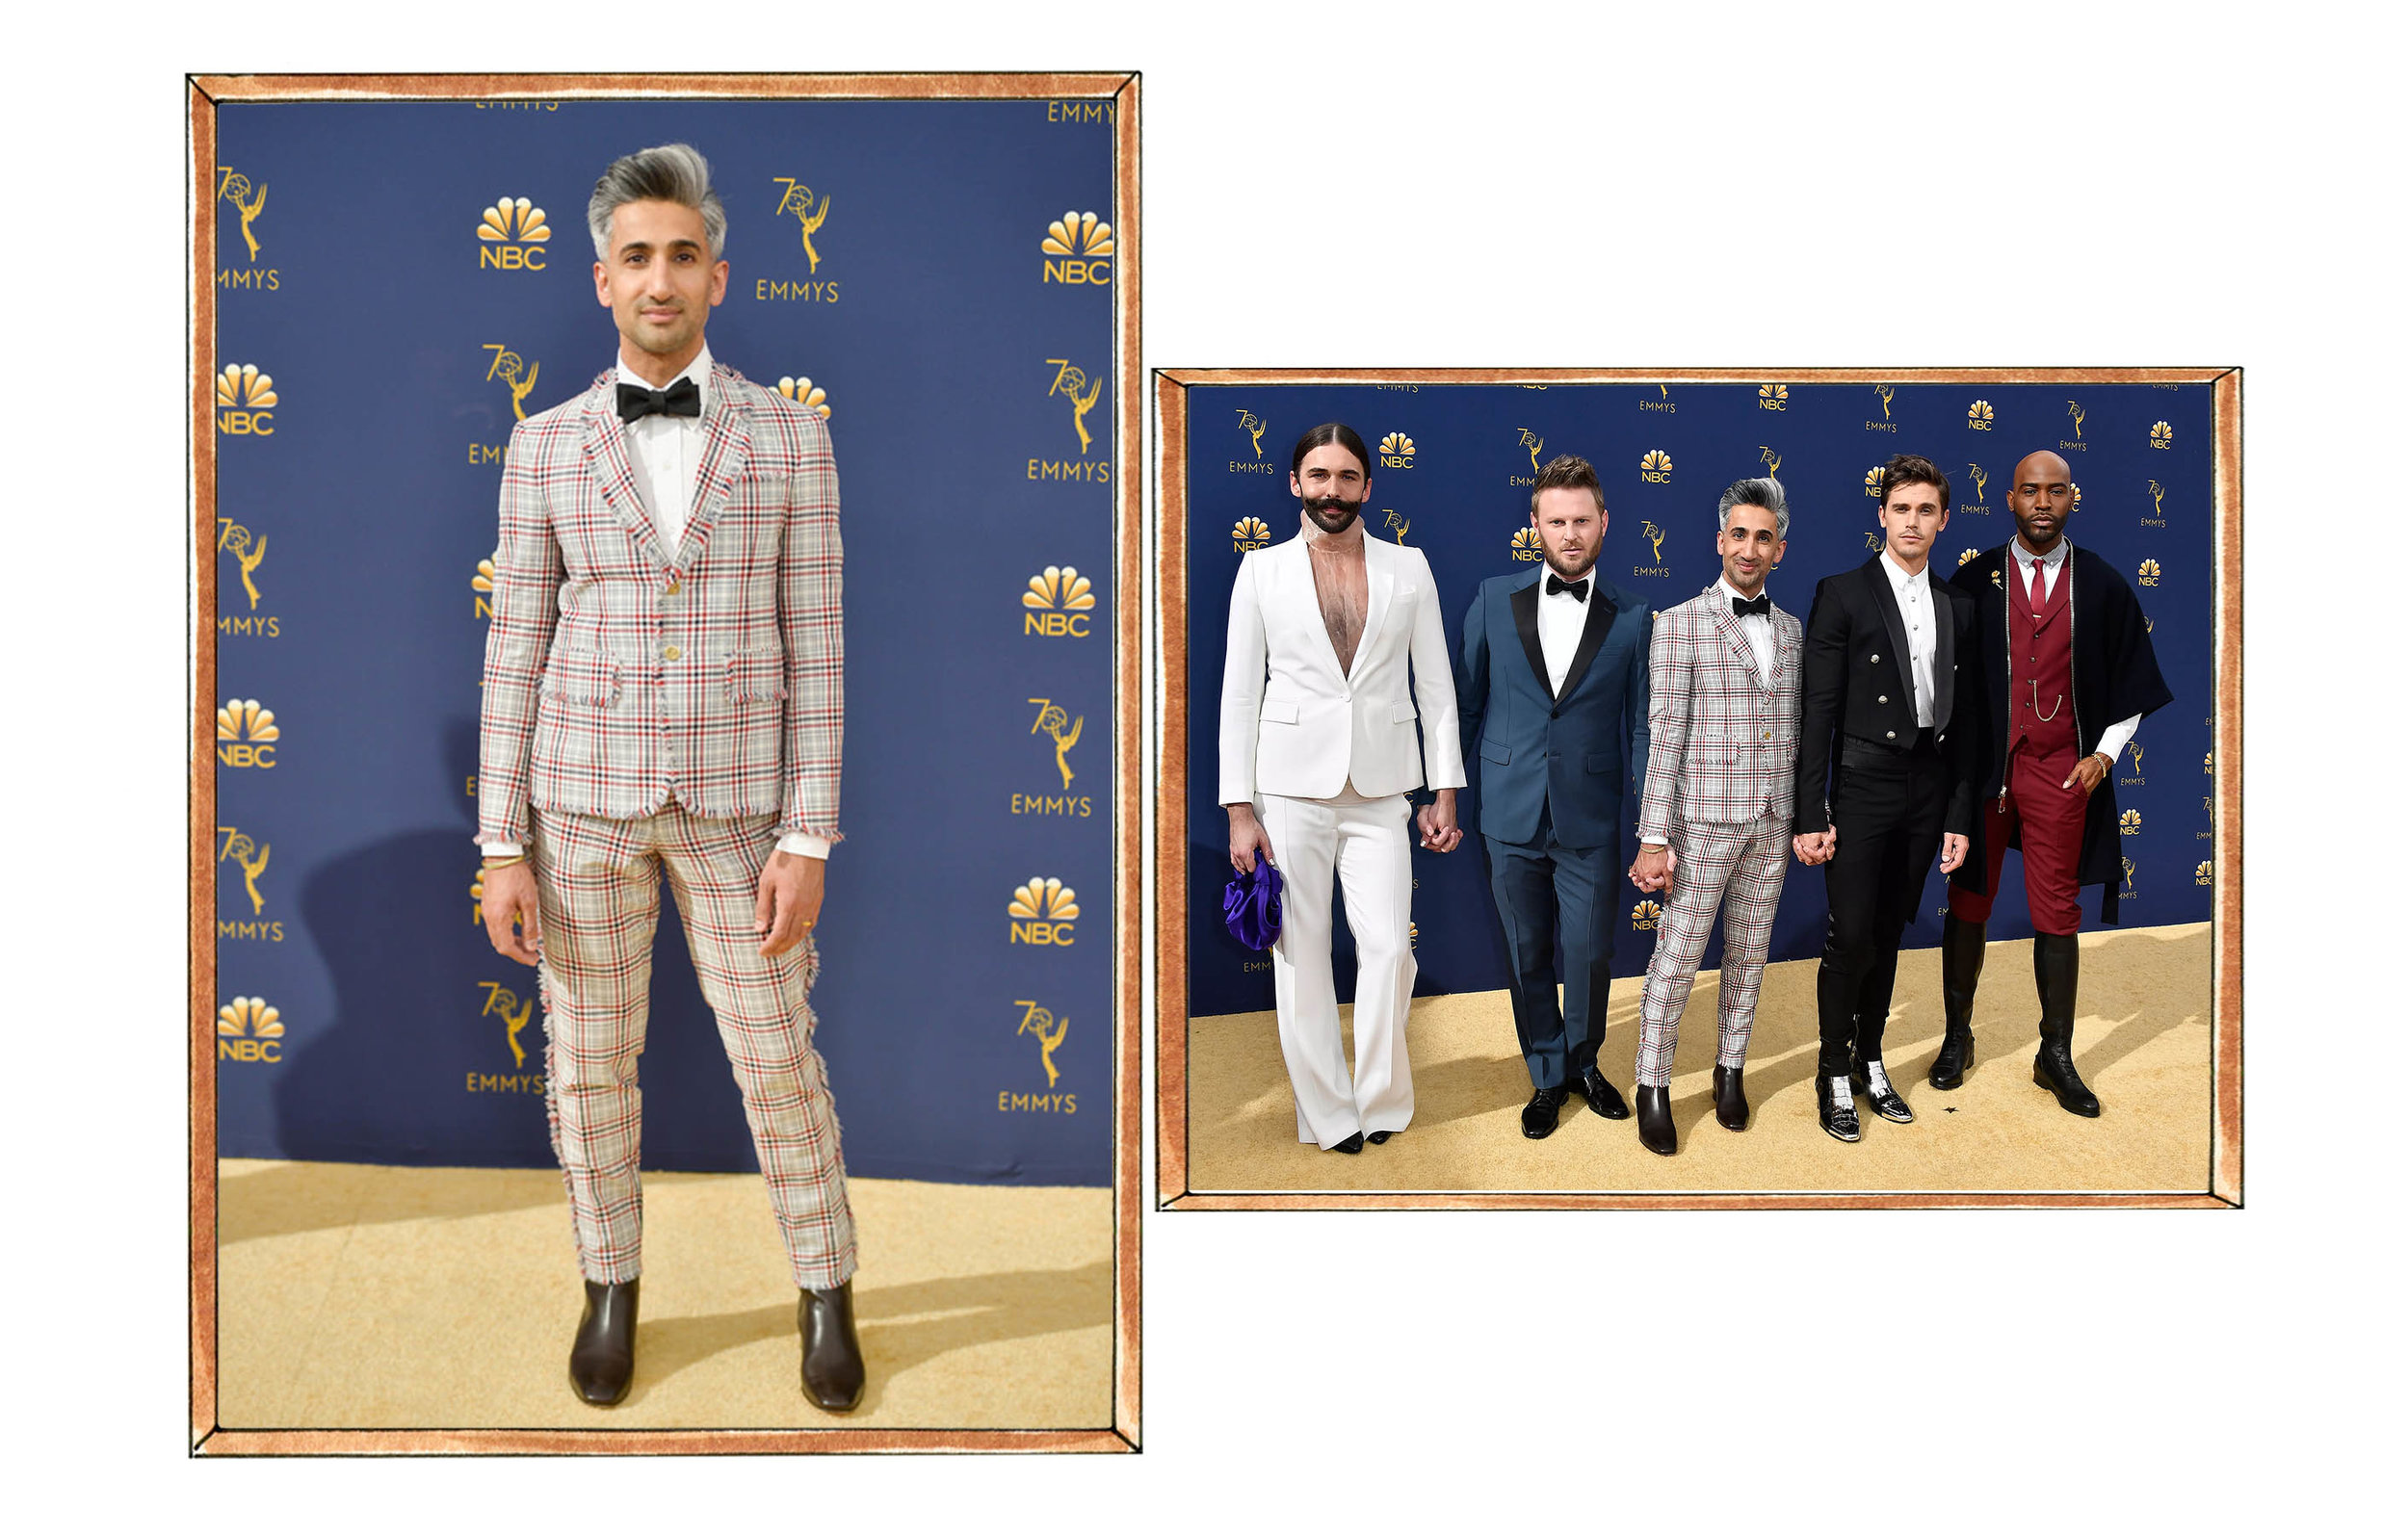 1_emmy 2018_tan france + queer eye cast.jpg